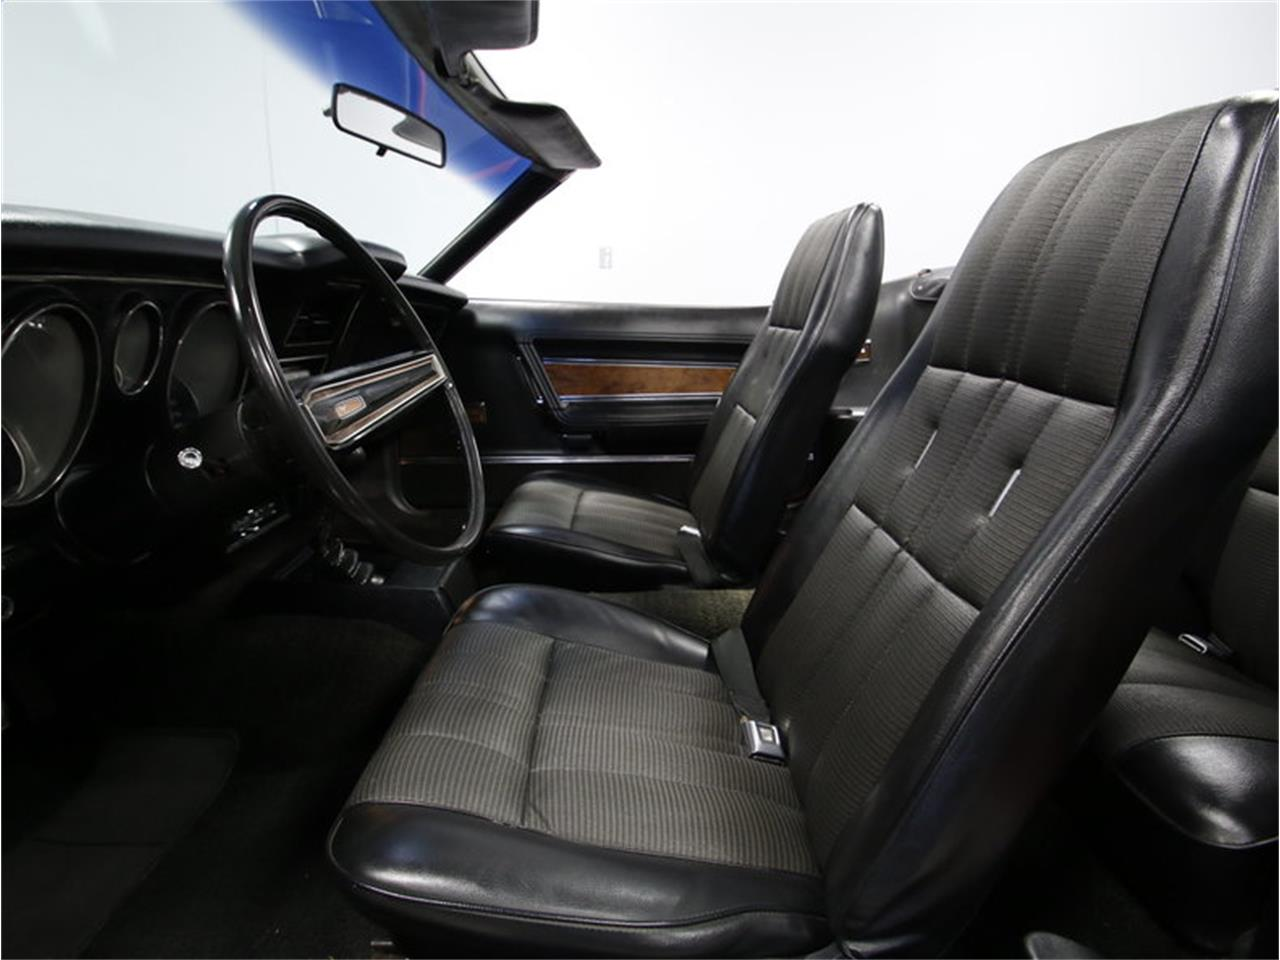 Large Picture of 1973 Ford Mustang 351 Cobra Jet located in Concord North Carolina - $24,995.00 - KISW